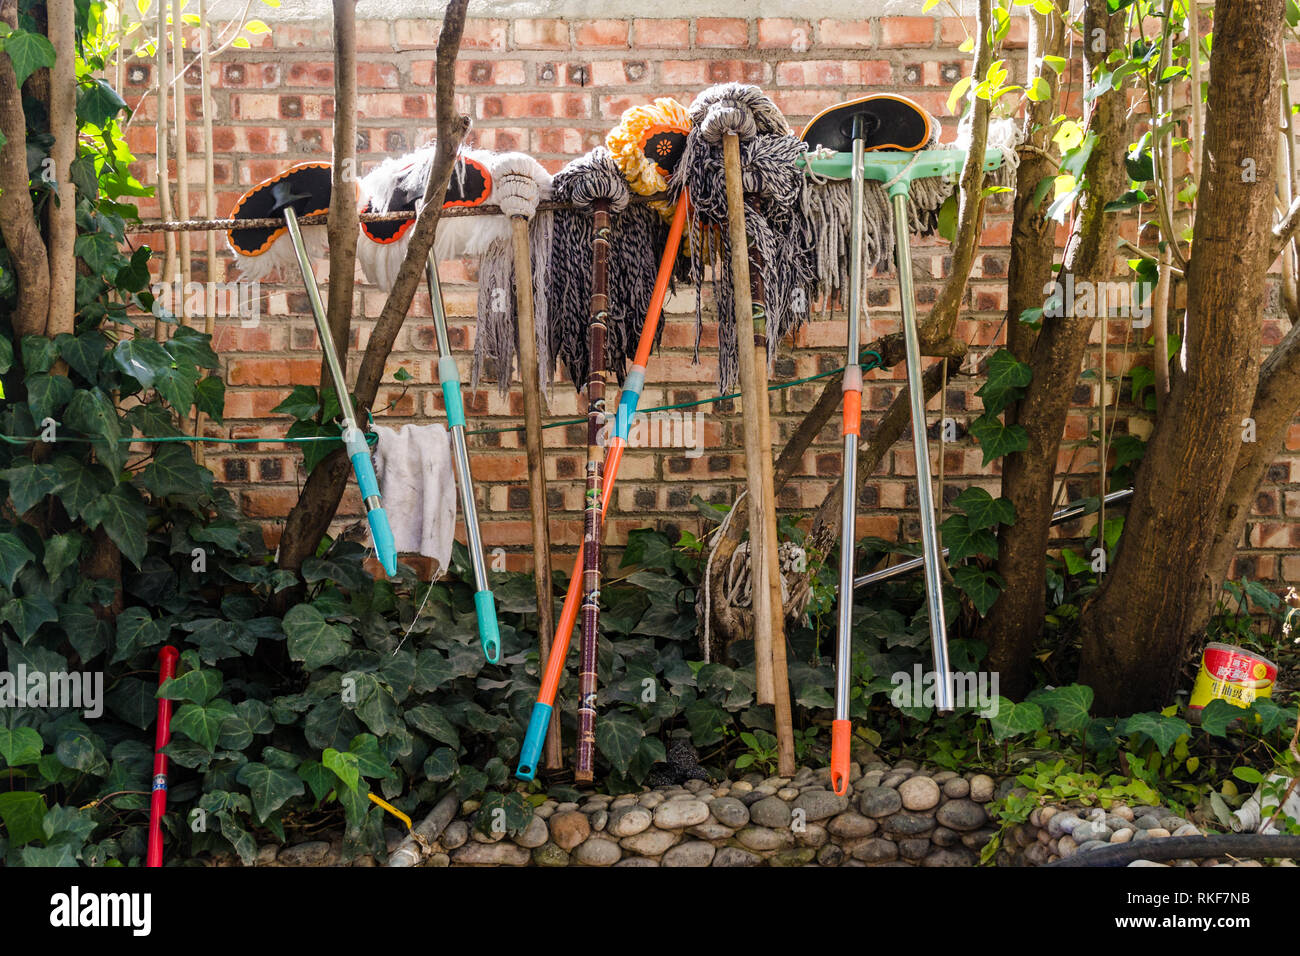 Brooms and mops hanging outdoor - Stock Image